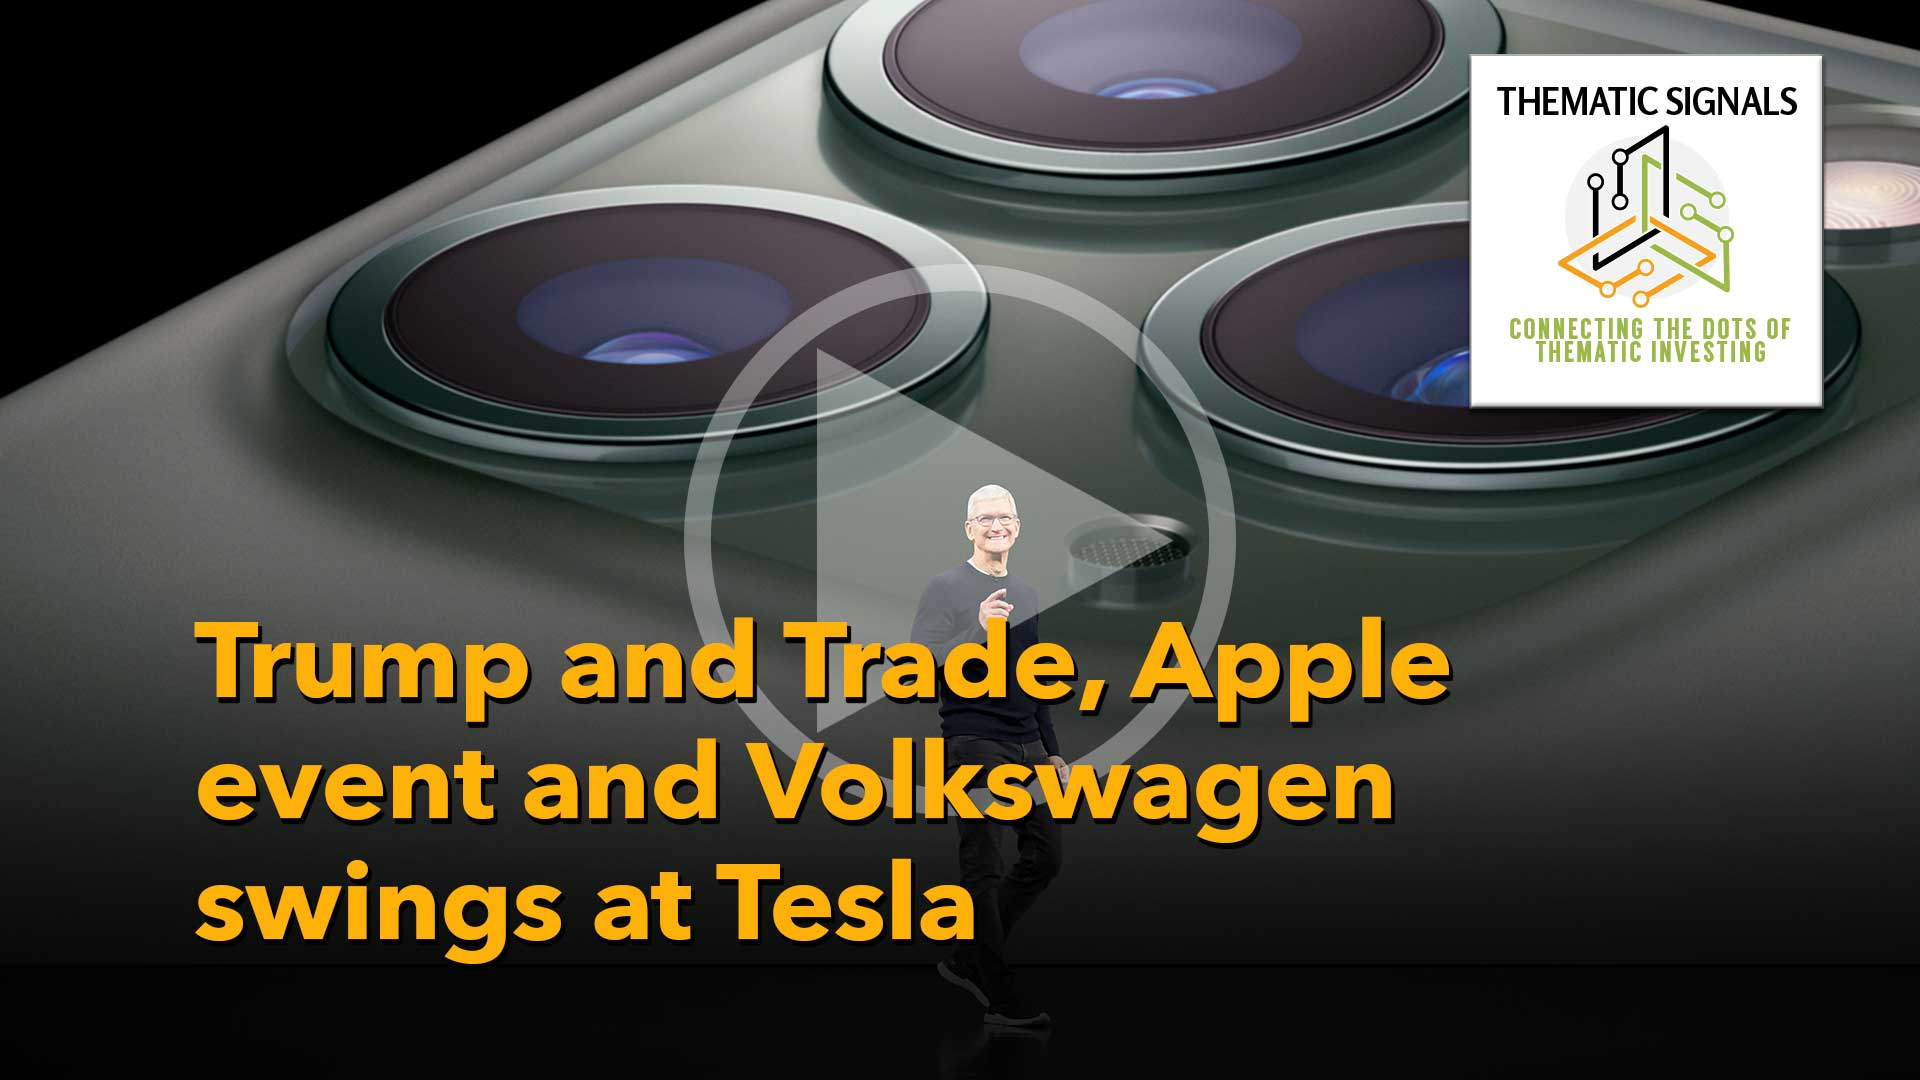 Ep 15 Trump and Trade, Apple event thoughts and Volkswagen swings at Tesla